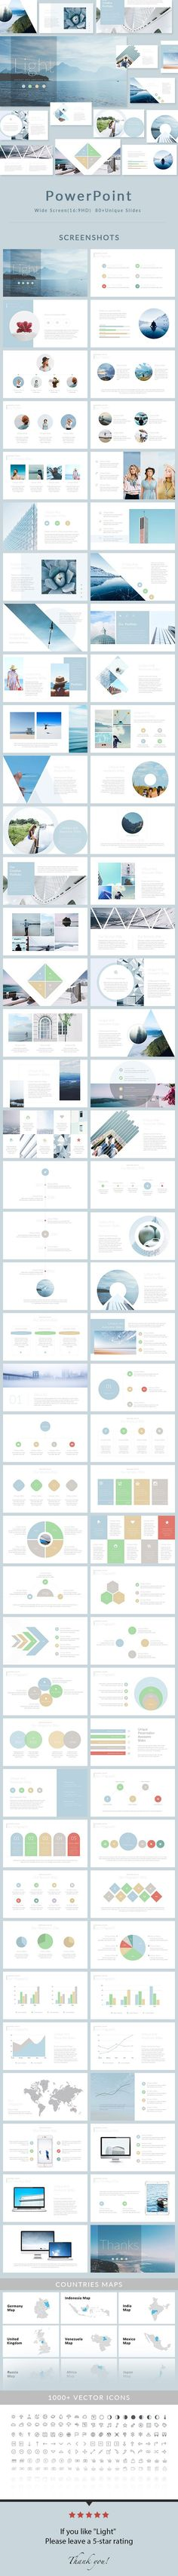 Light - PowerPoint Presentation Template